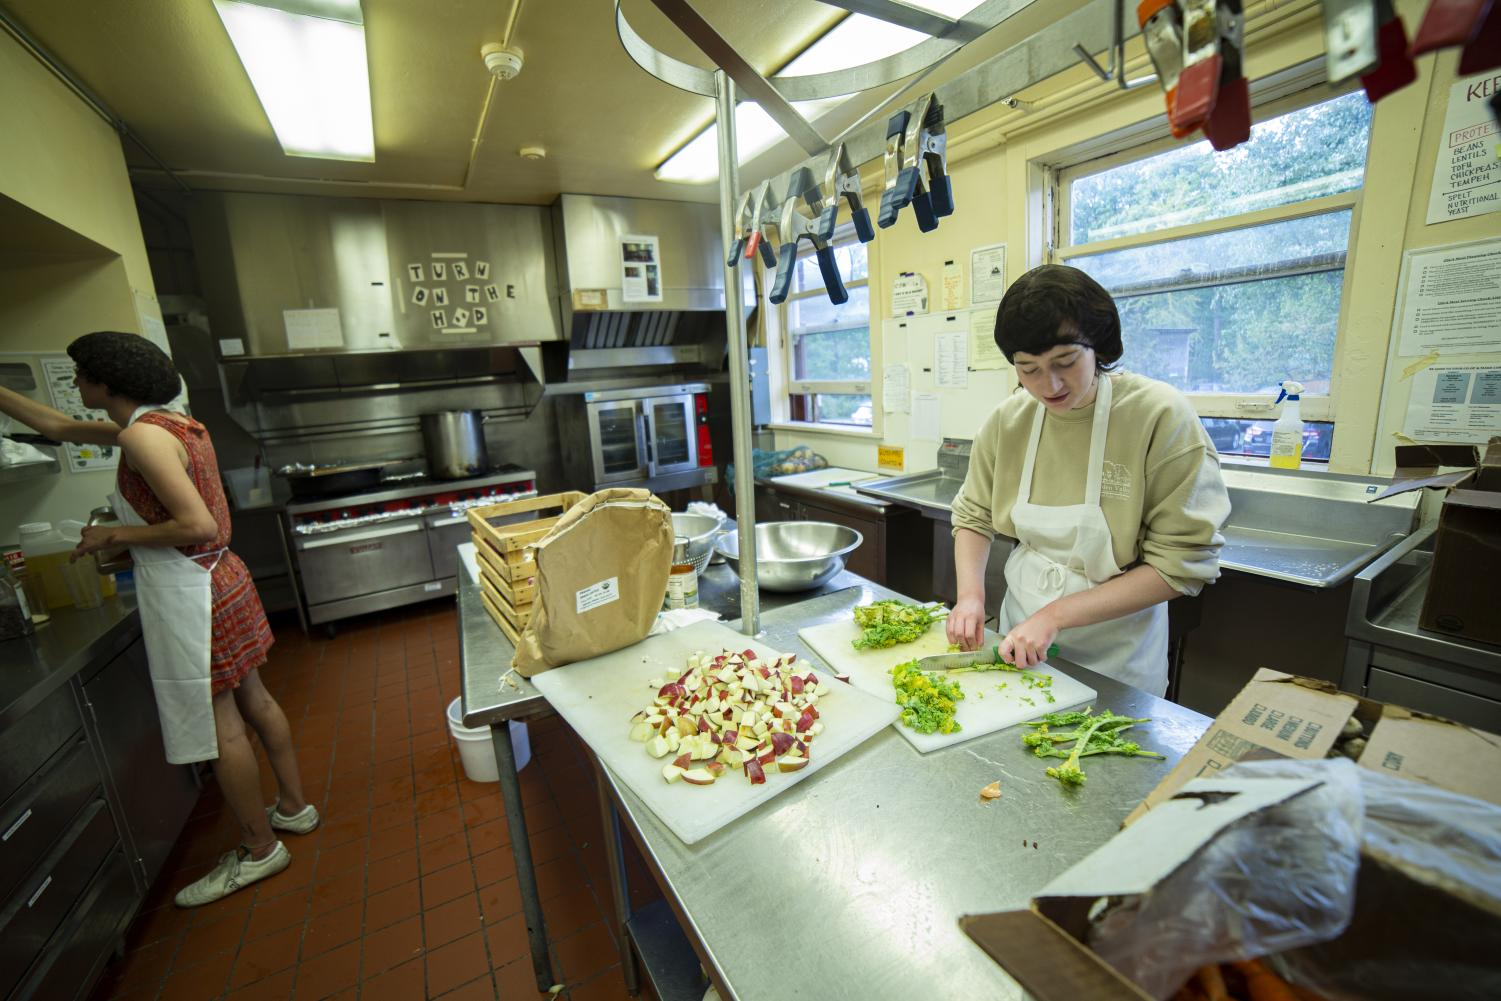 Members of the Oberlin Student Cooperative Association prepare a meal in the kitchen of Keep co-op. Canceled meals due to a turbulent interim period have raised concerns for OSCA members over ongoing negotiations with the College administration.